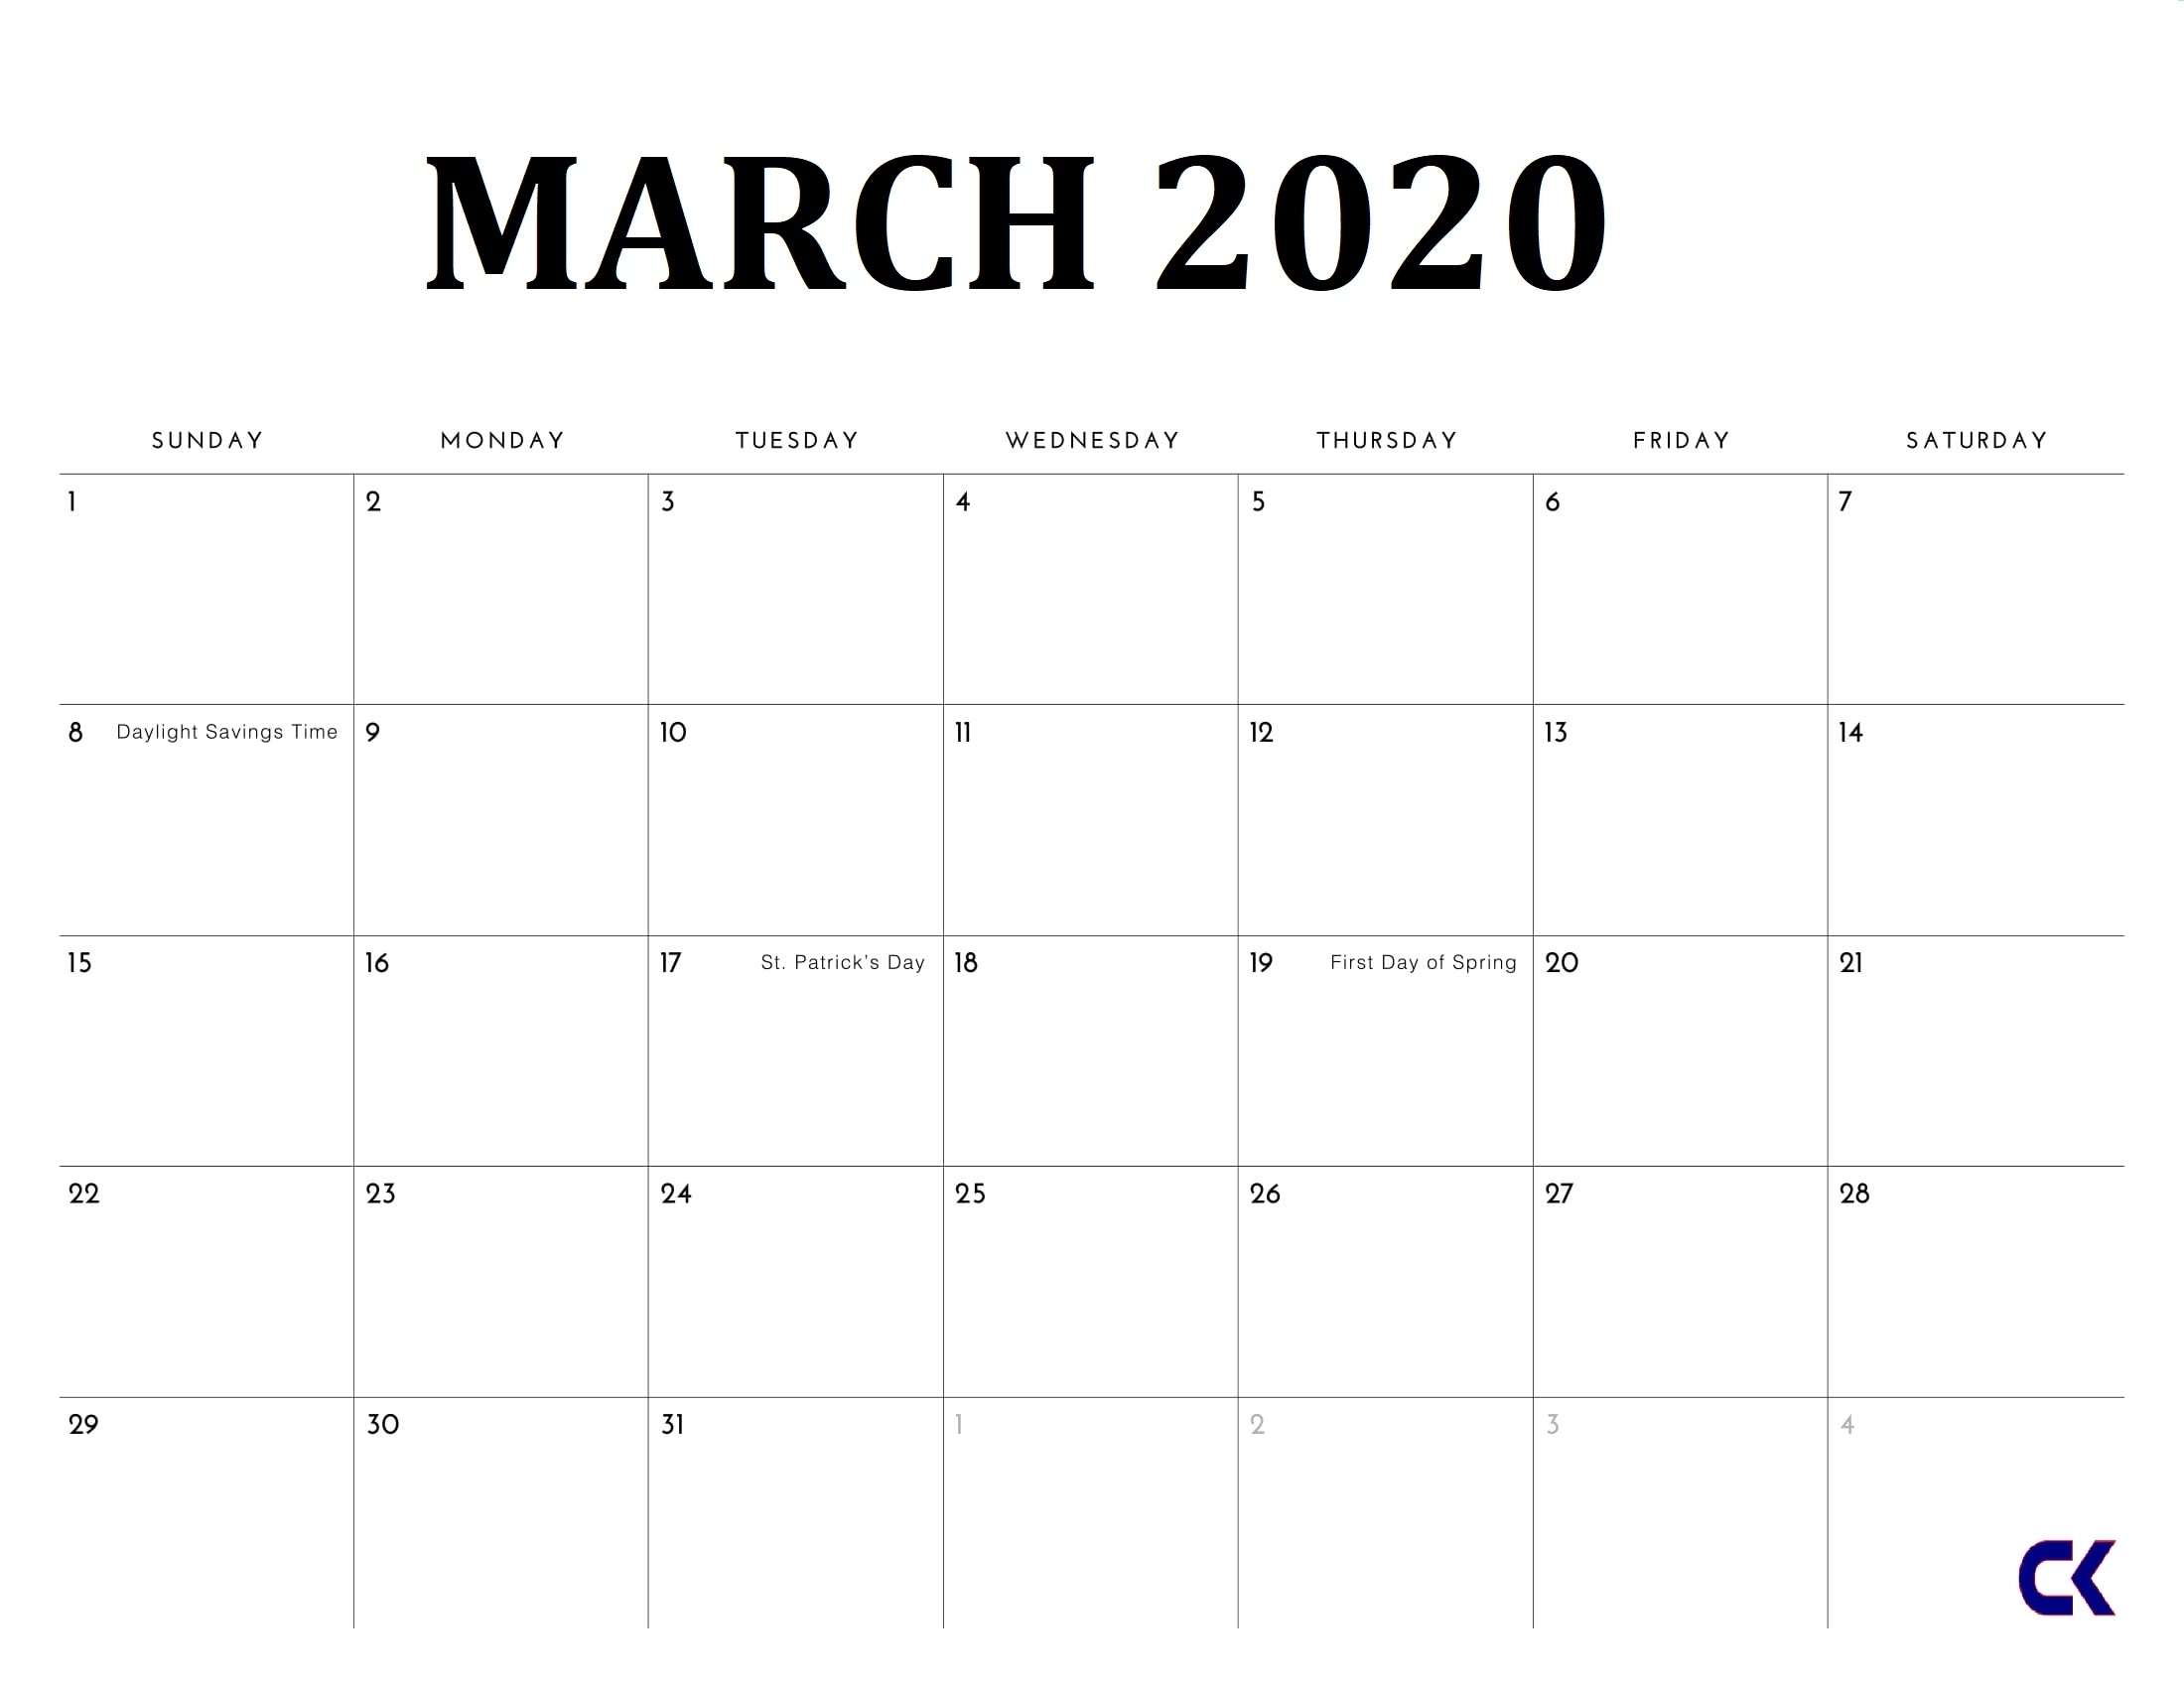 Free Printable March 2020 Calendar - throughout Free Weekly Catholic Calendar 2020